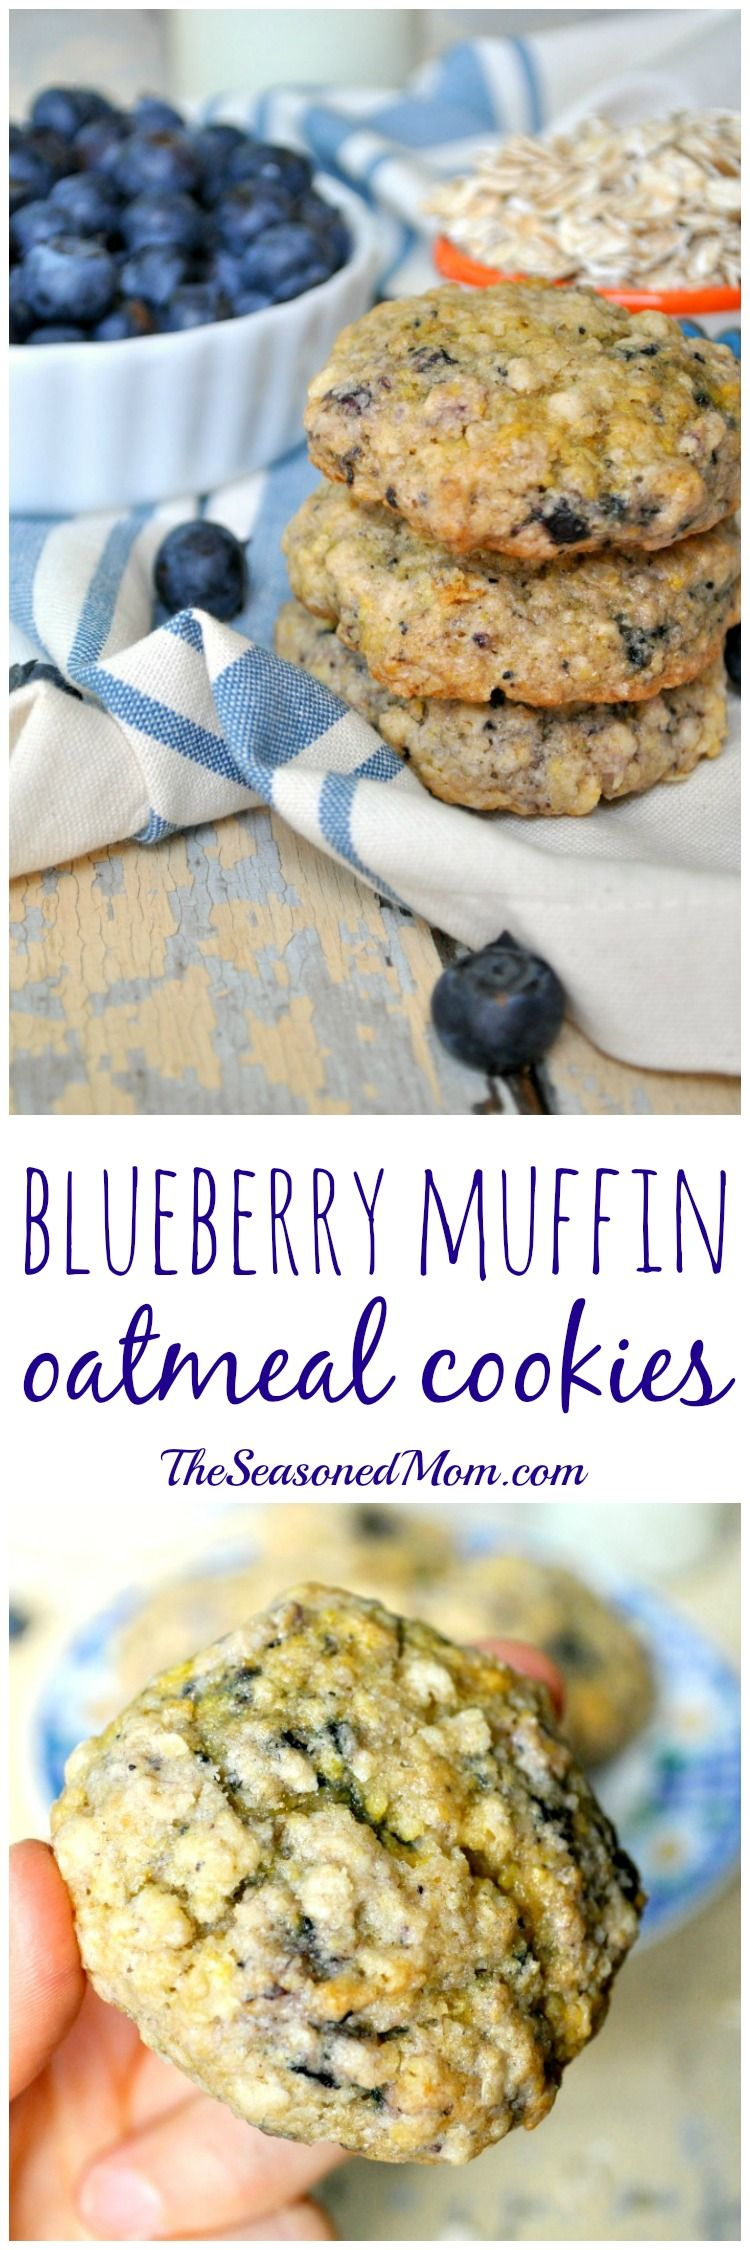 Pinterest Blueberry Recipe Image